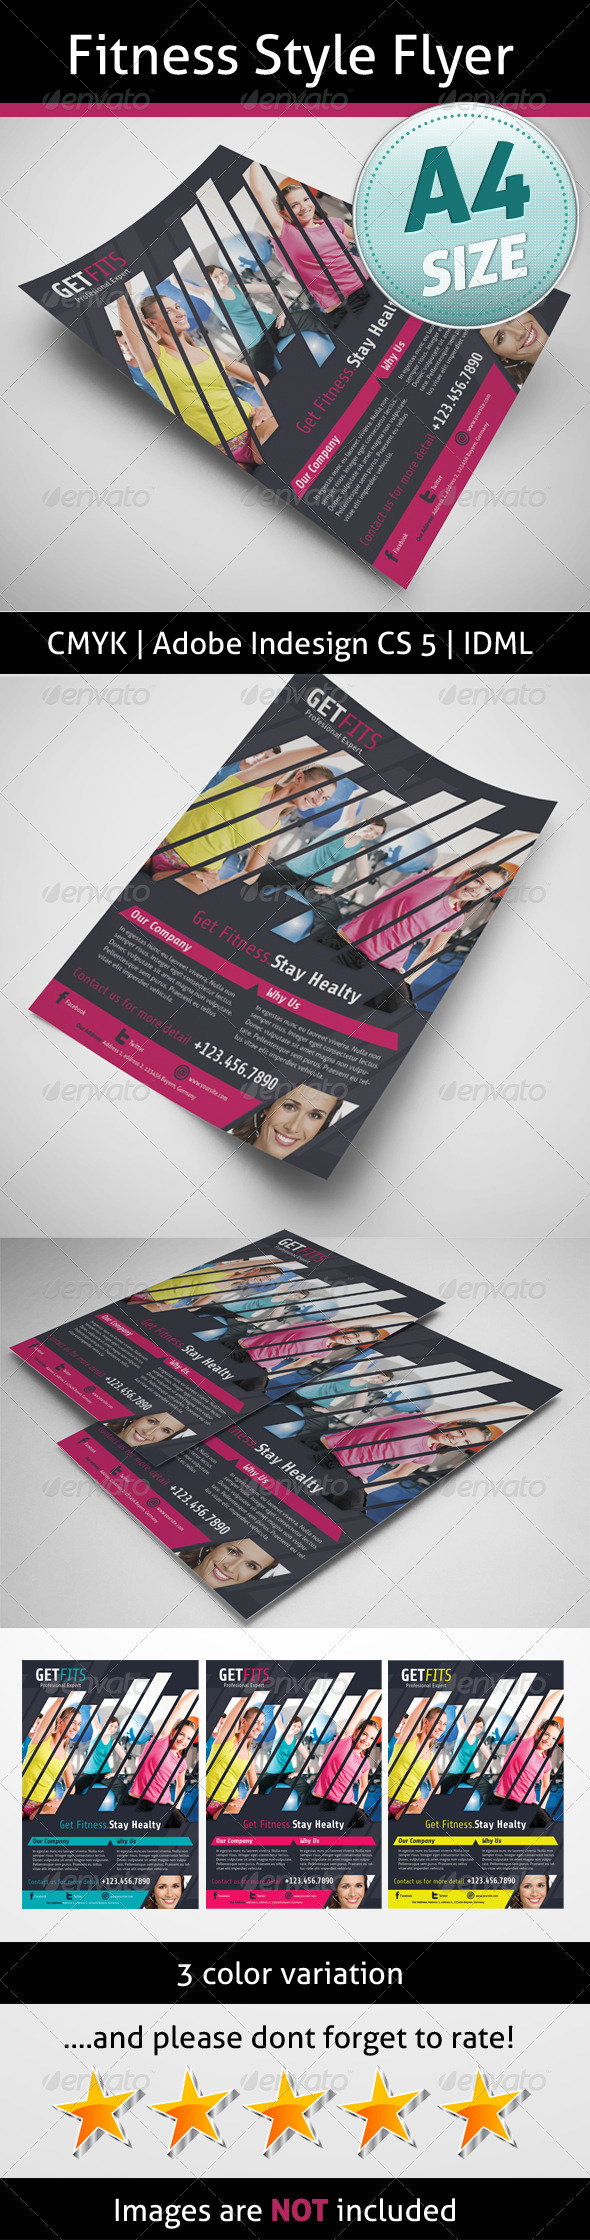 GraphicRiver Fitness Style Flyer 5171953